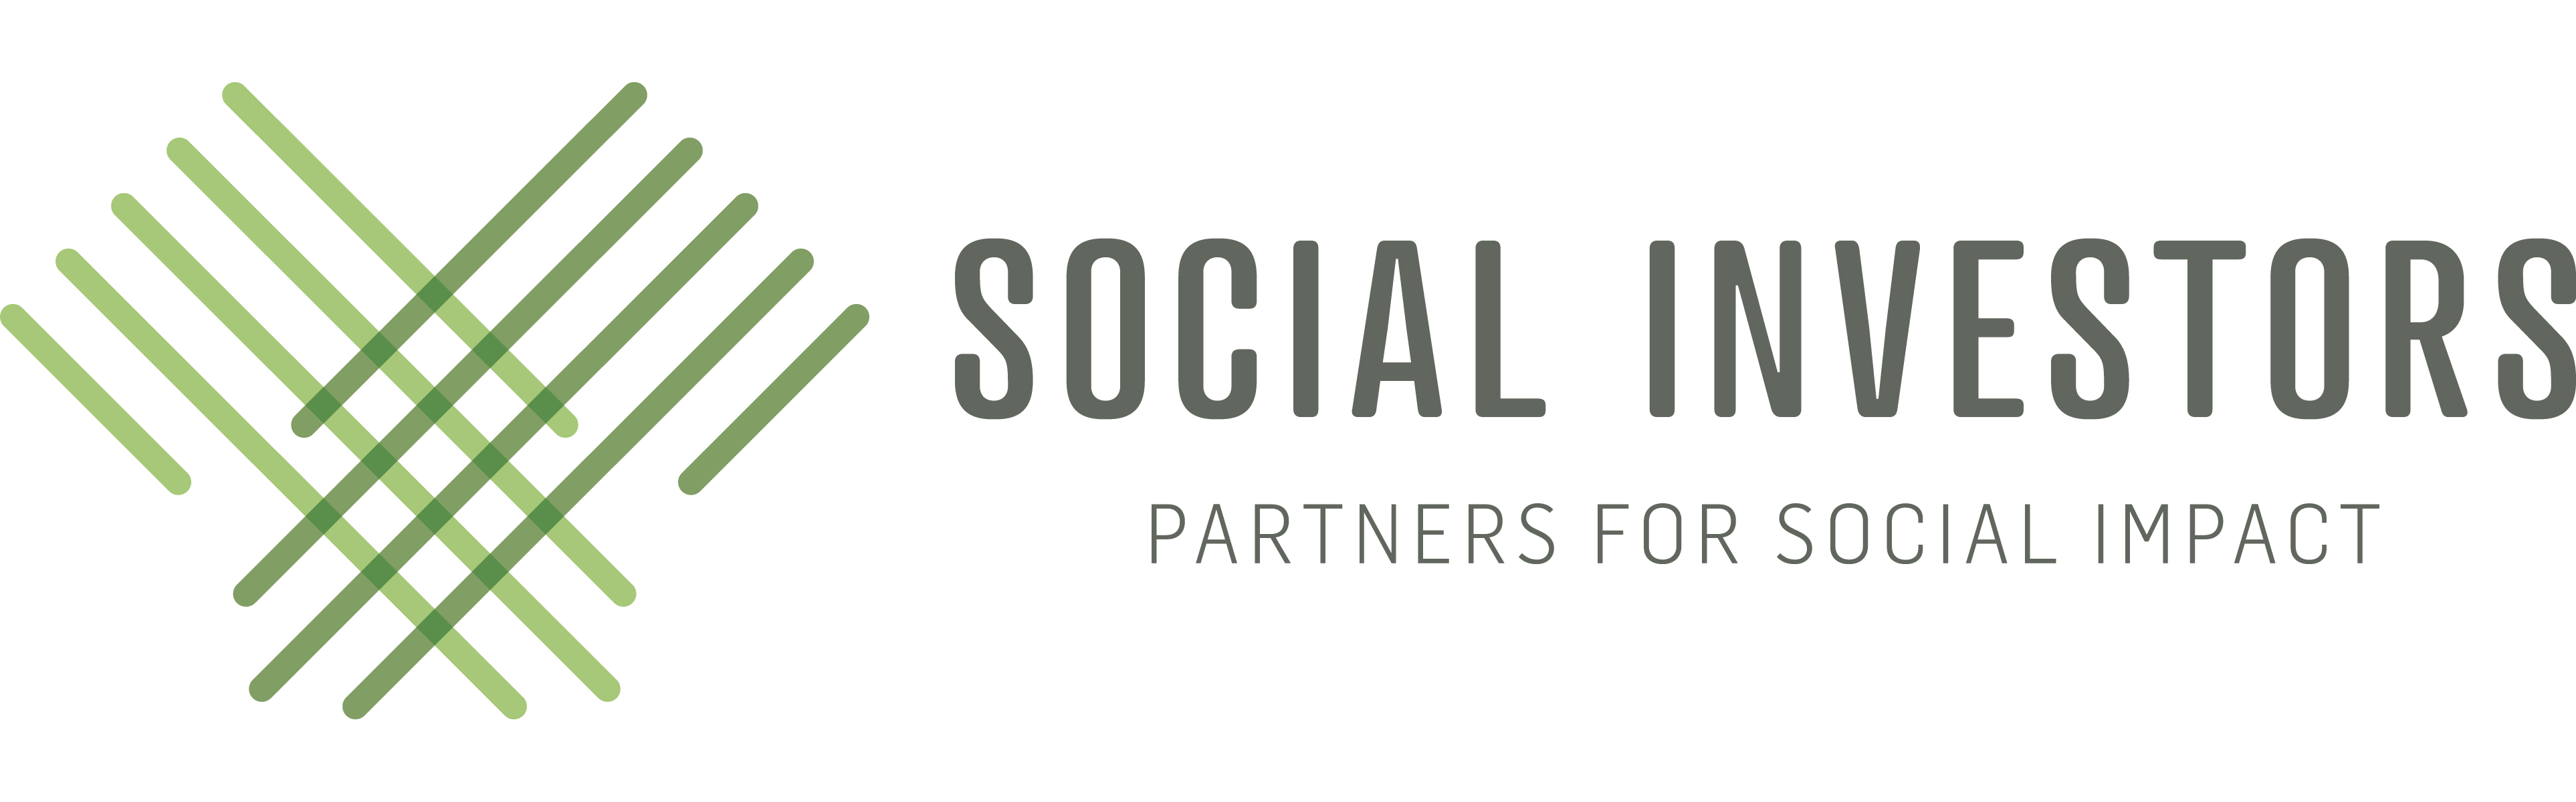 Partners for Social Impact